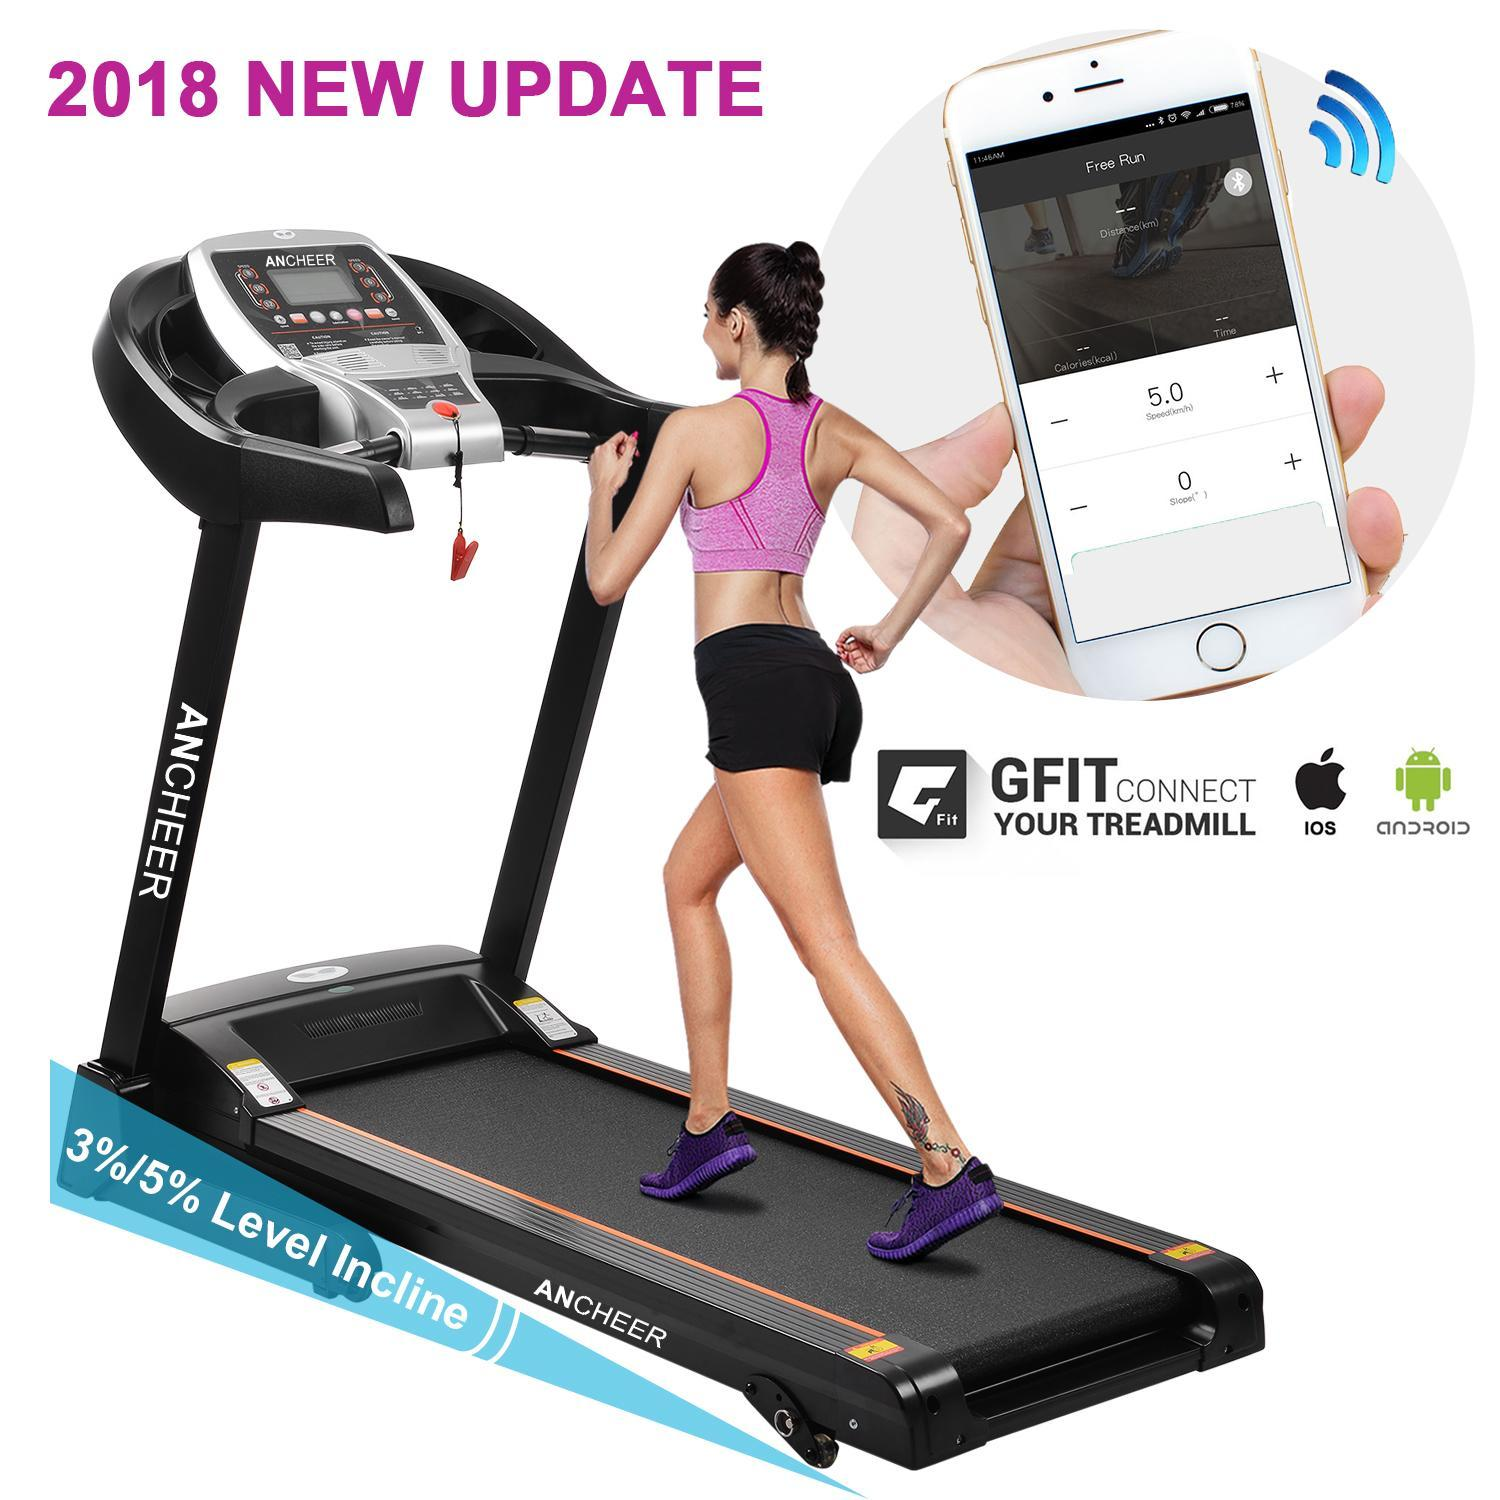 Hifashion Treadmill APP Blutooth&Wifi+Manual incline S5300 Folding Electric Treadmill